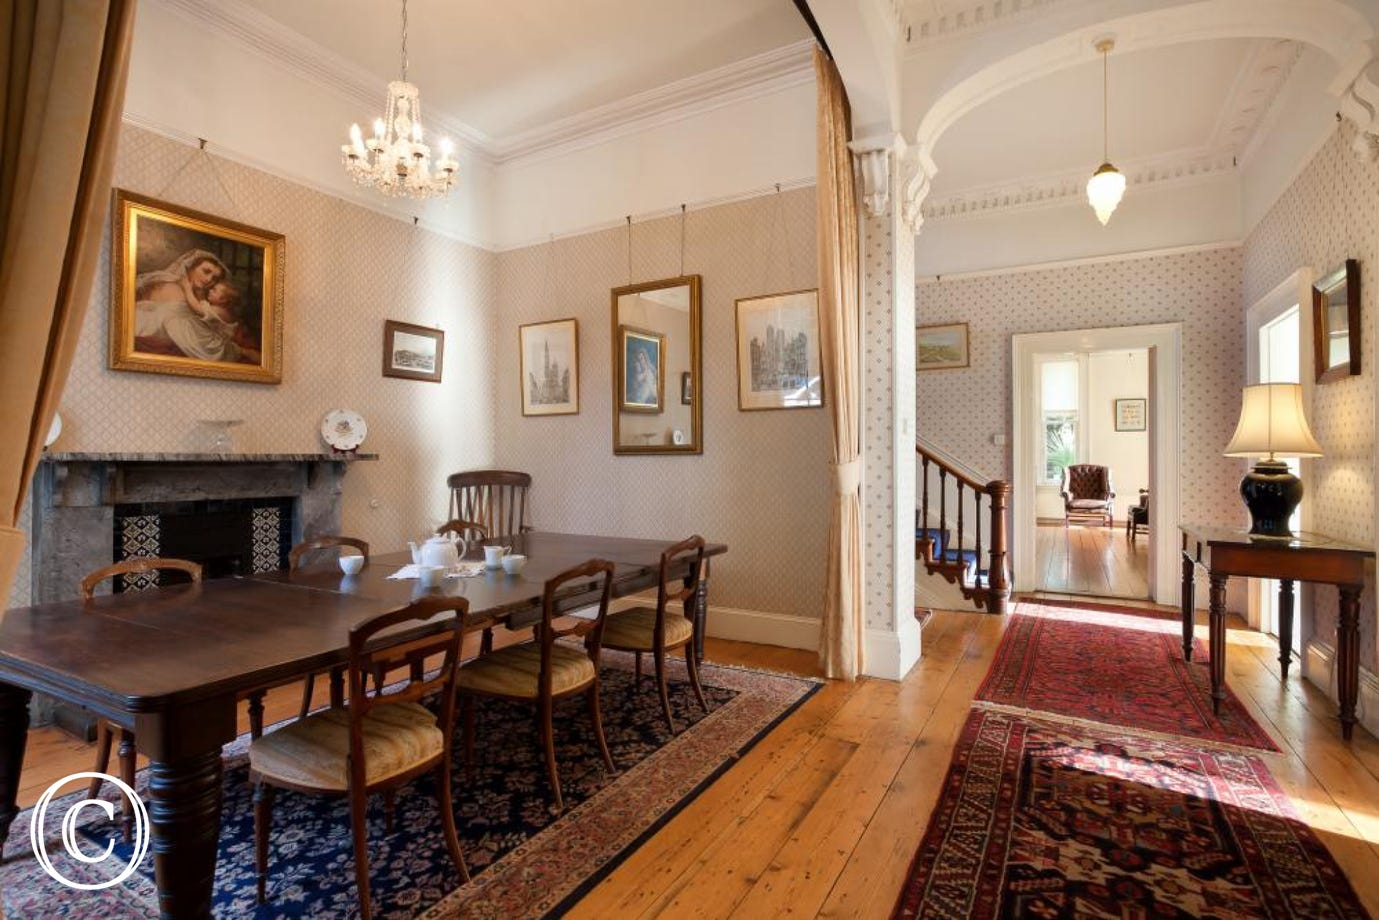 Longcroft House, Torquay - Elegant dining room